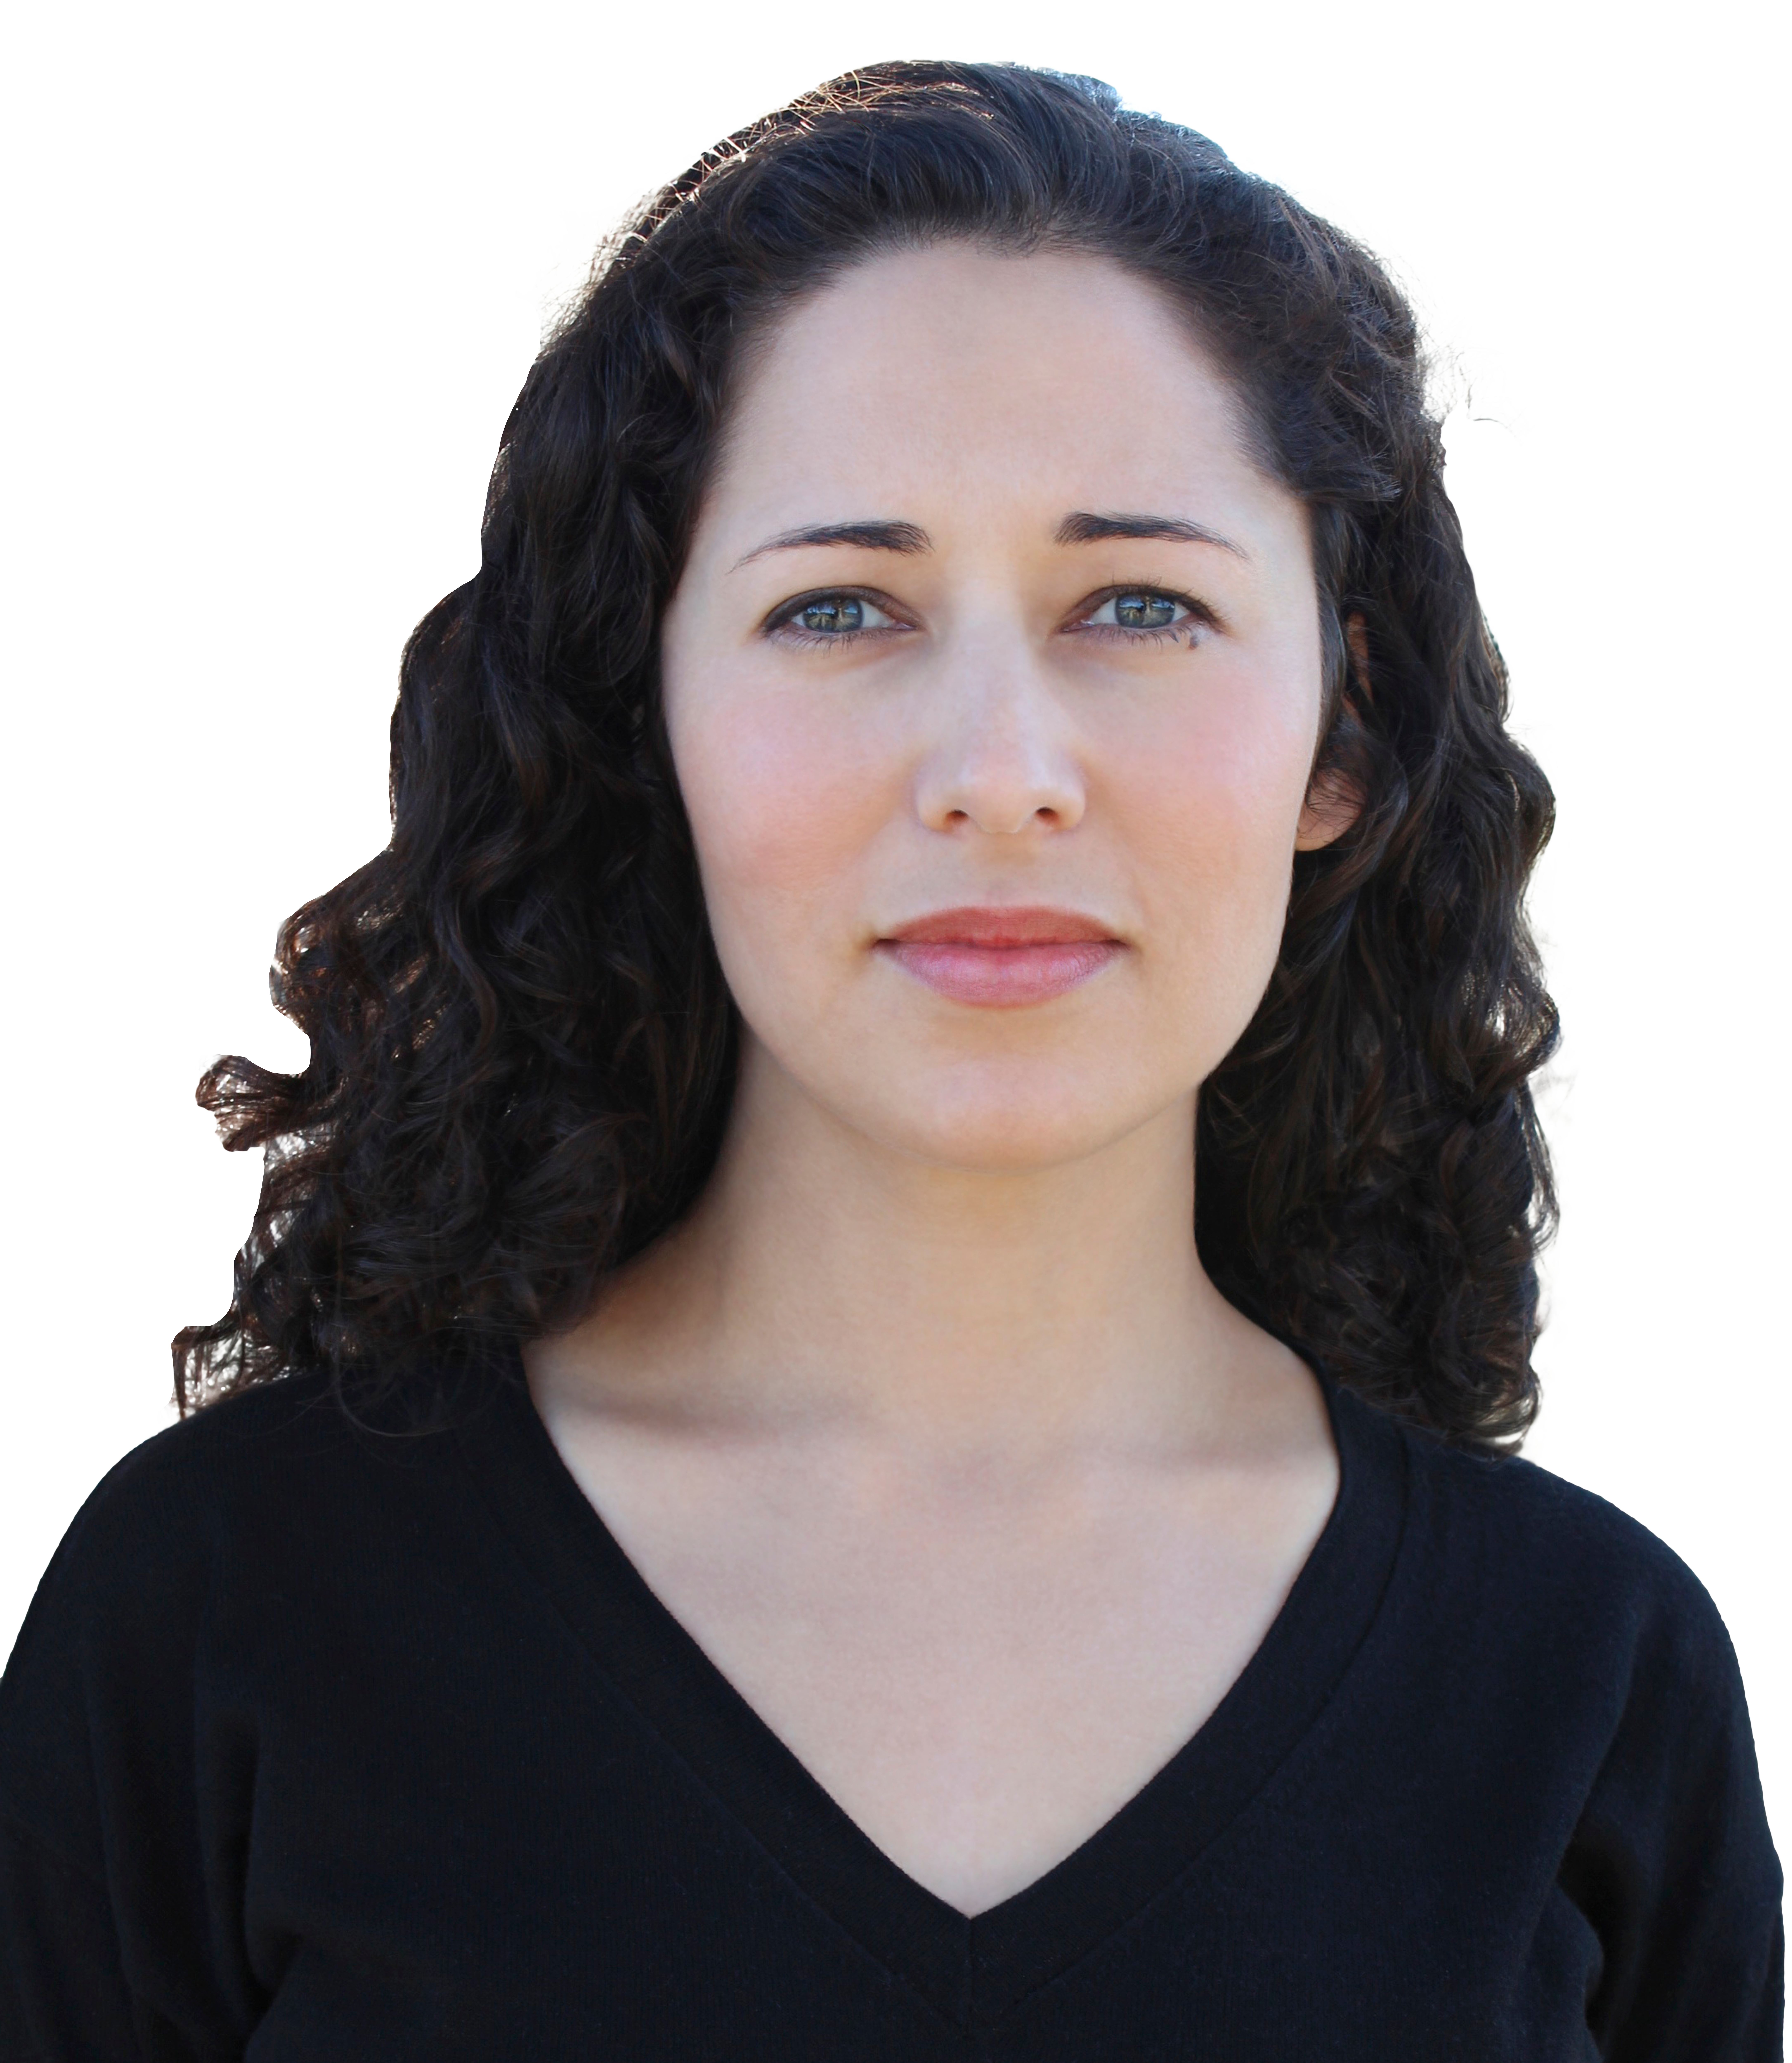 Fiction phenom Kirstin Valdez Quade returns with an intricate novel set in New Mexico.